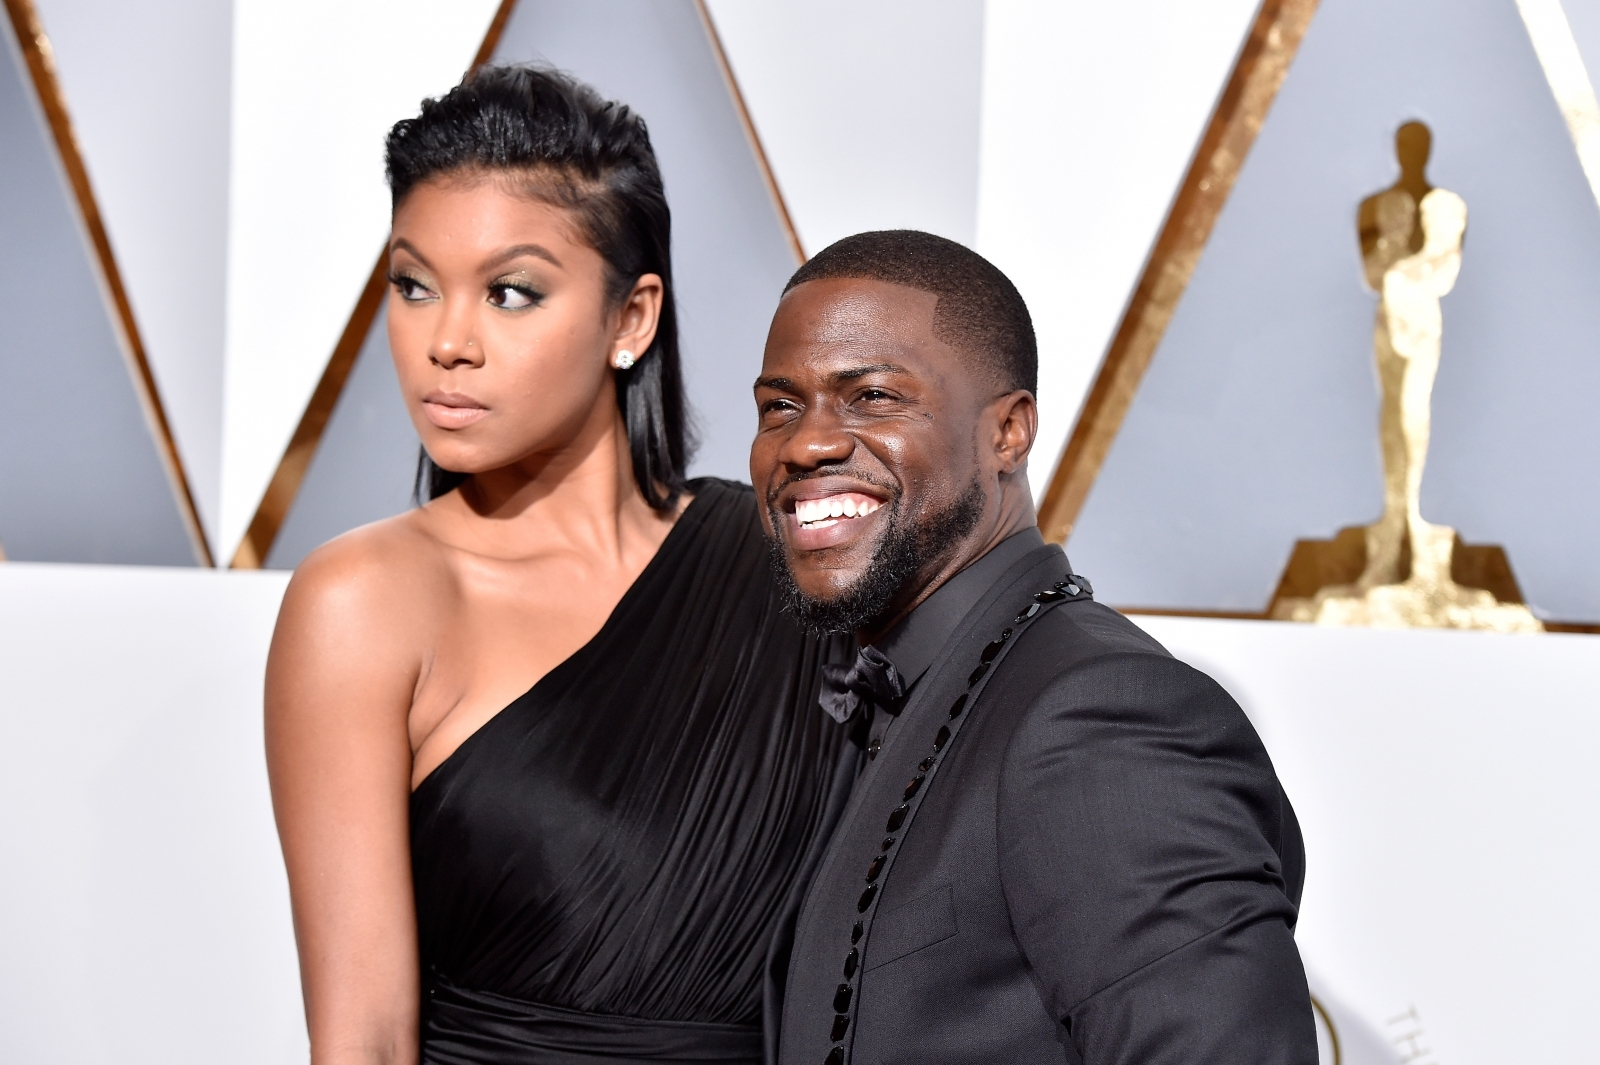 Kevin Hart has nothing but love for wife Eniko Parrish